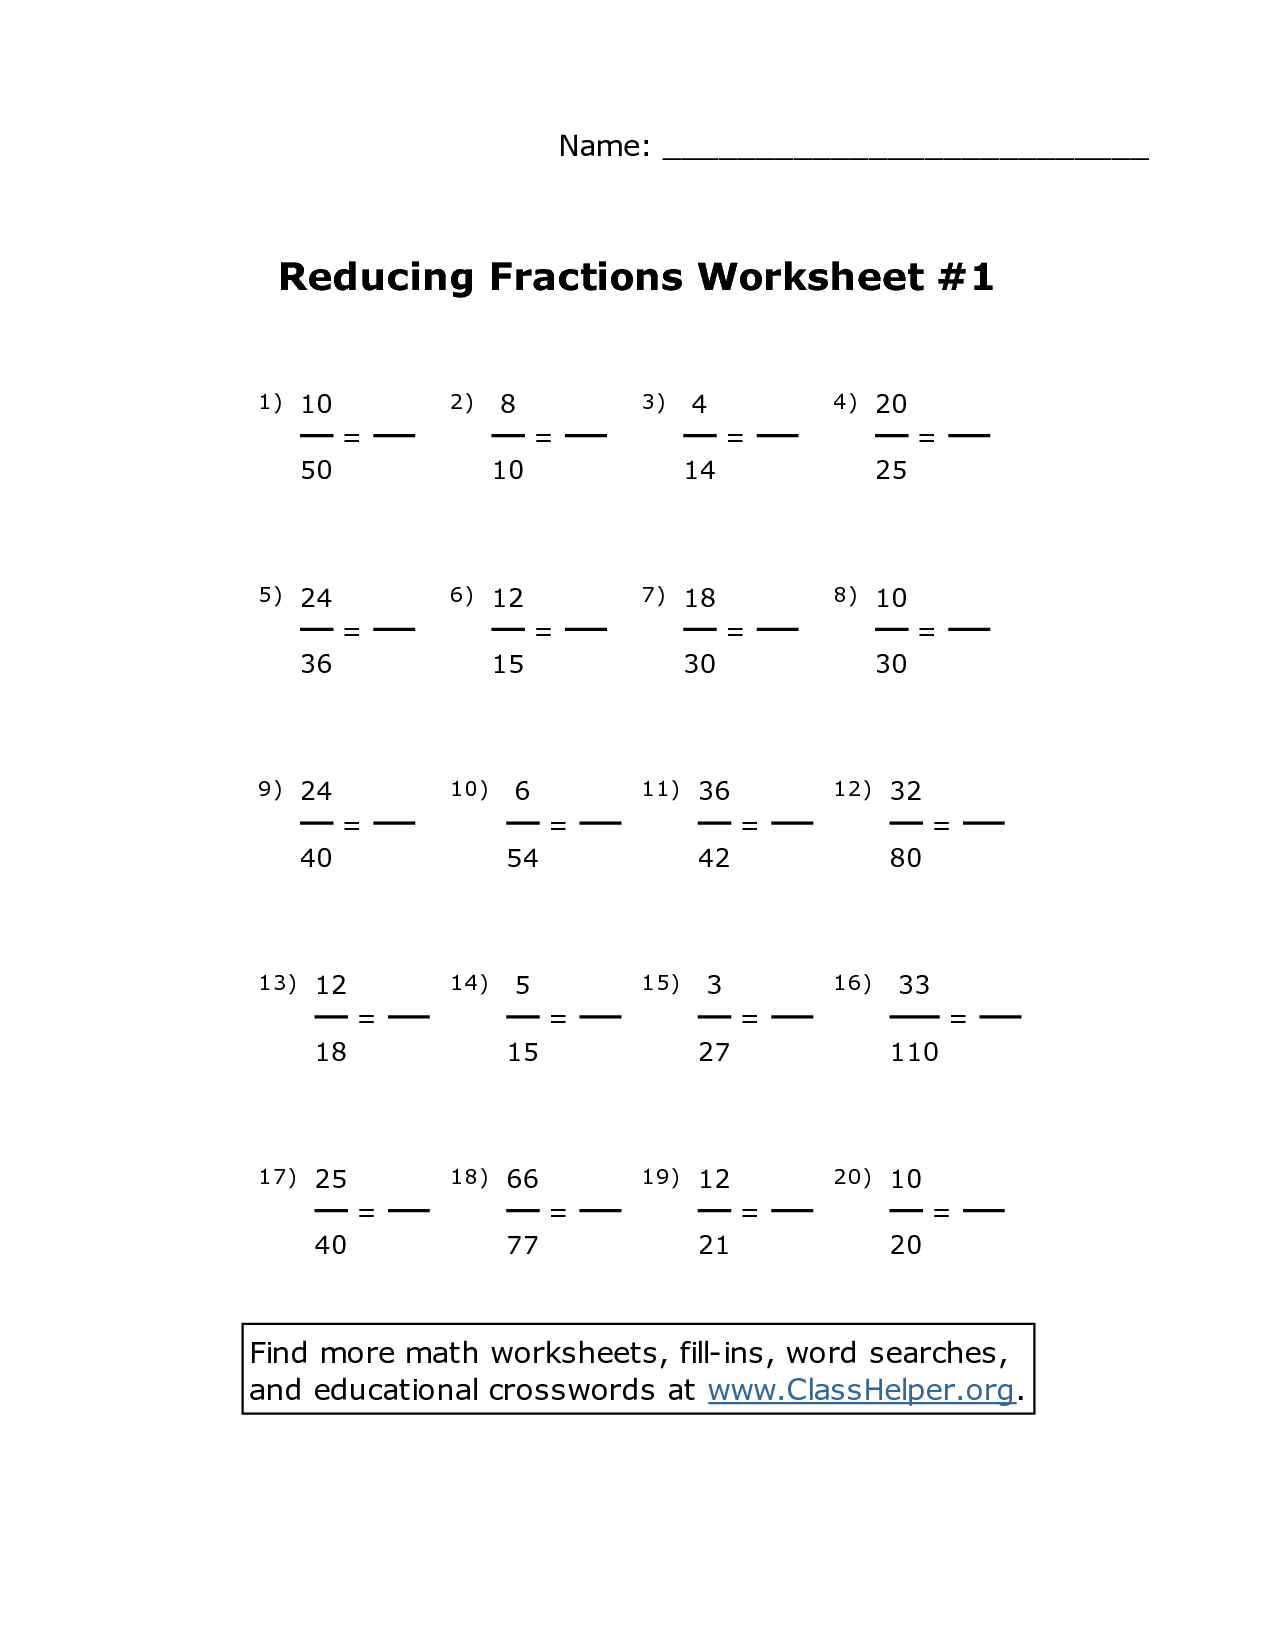 Simplifying Fractions Worksheets For 4th Graders